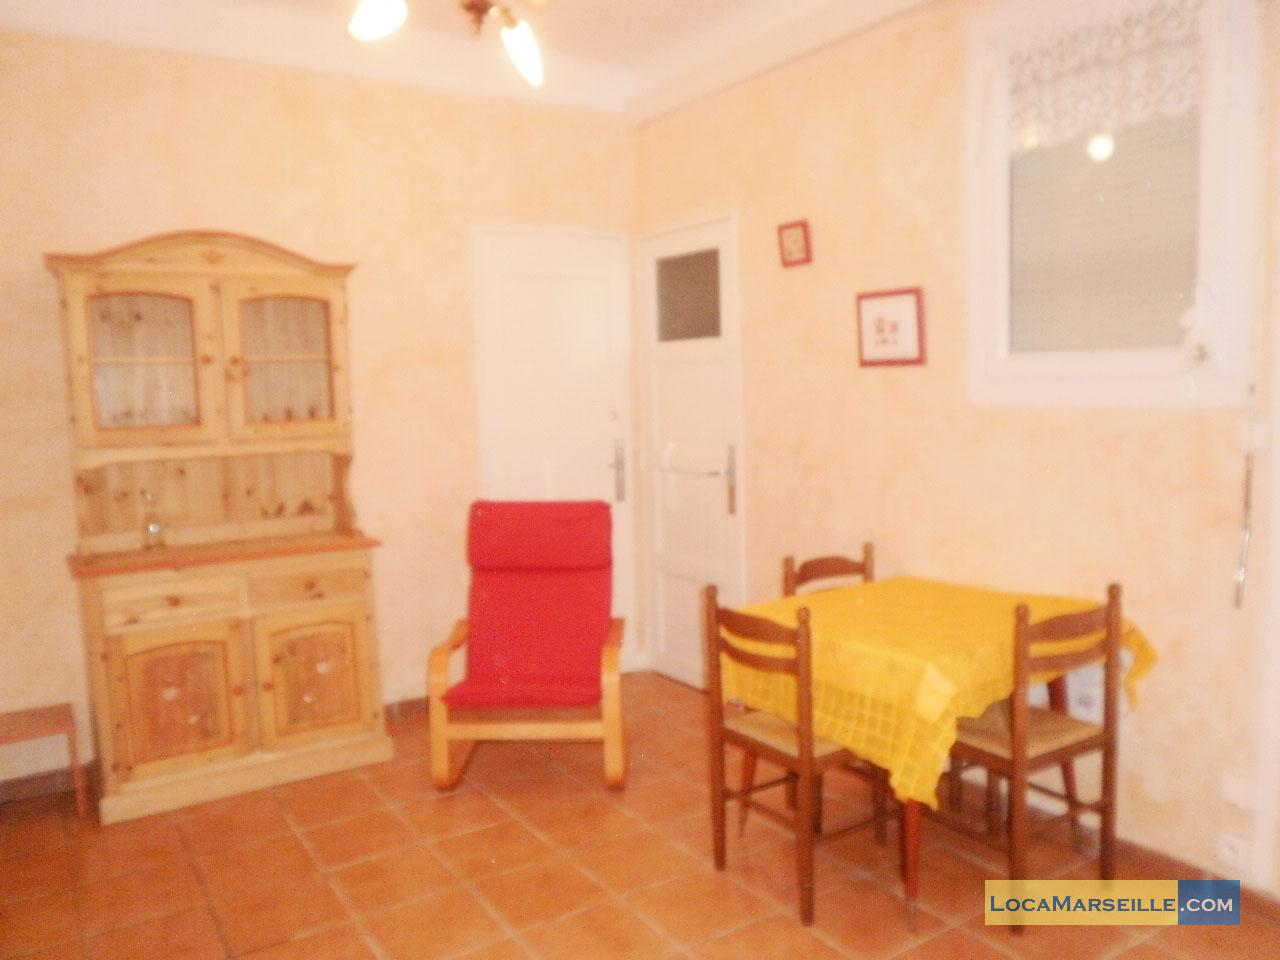 Location meubl e marseille appartement type t1 studio for Salle a manger 1920